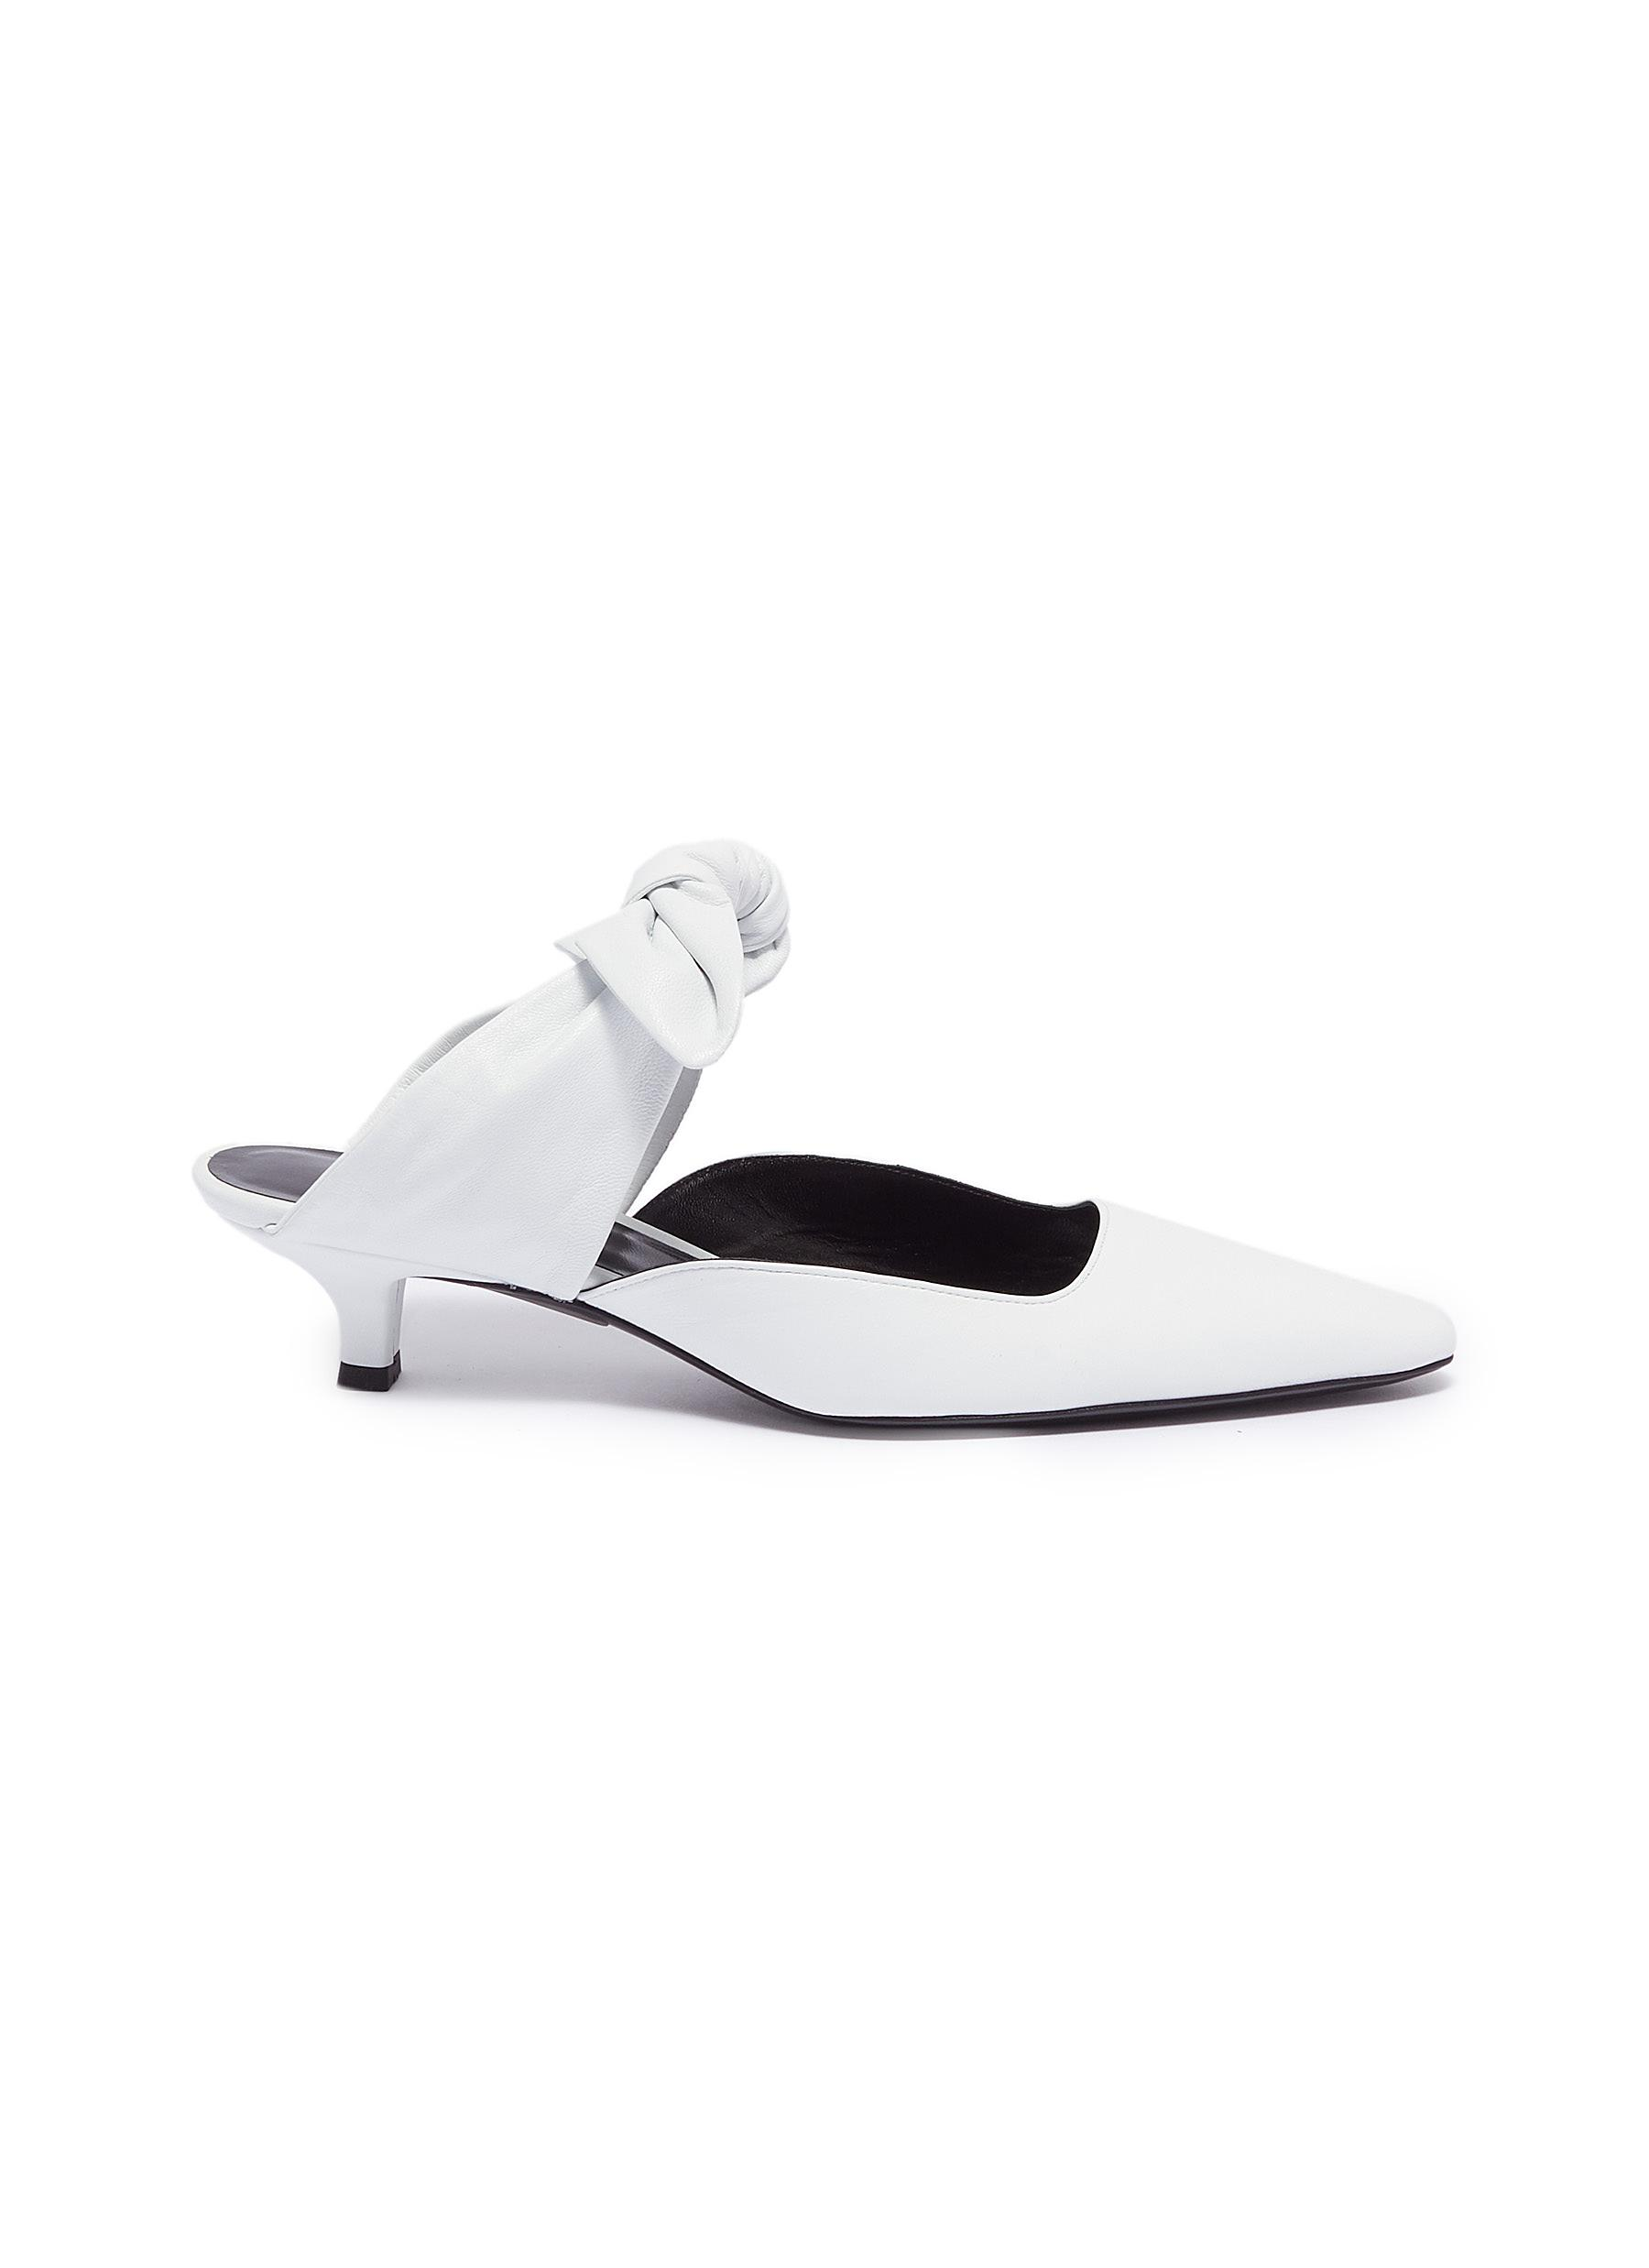 Coco bow tie leather mules by The Row